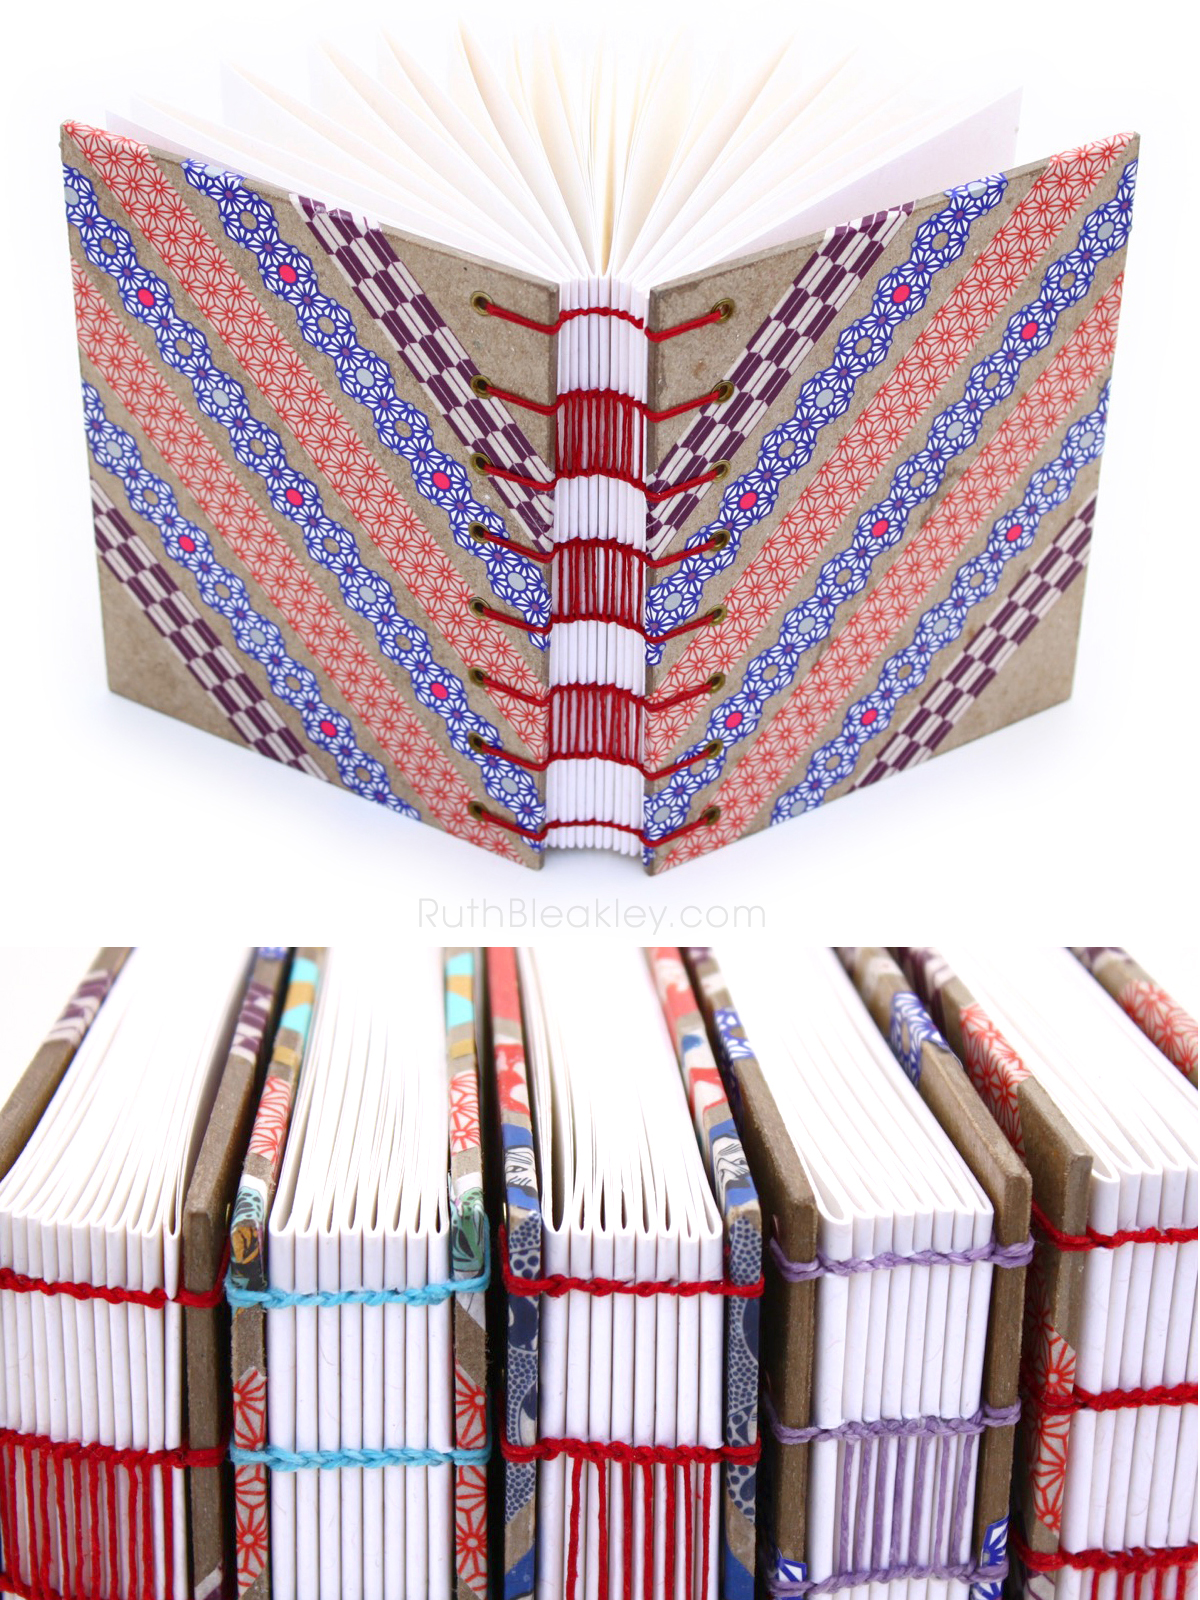 Red Blue and Purple Washi Tape Journal handmade by Ruth Bleakley - 6